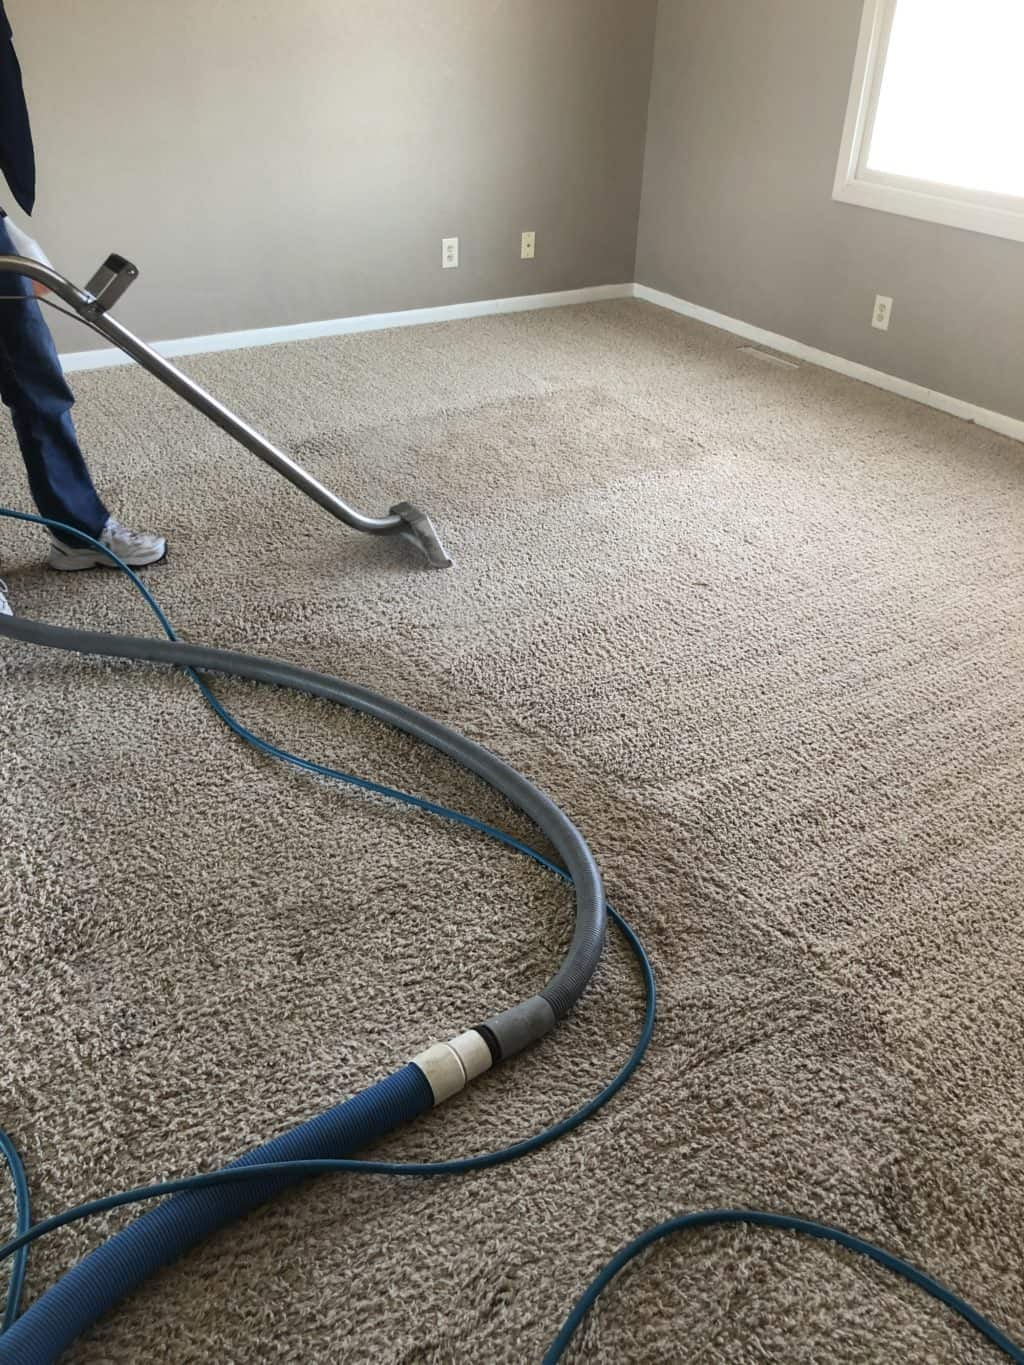 carpet-cleaning-services-residential-wichita-ks-city-steam-clean